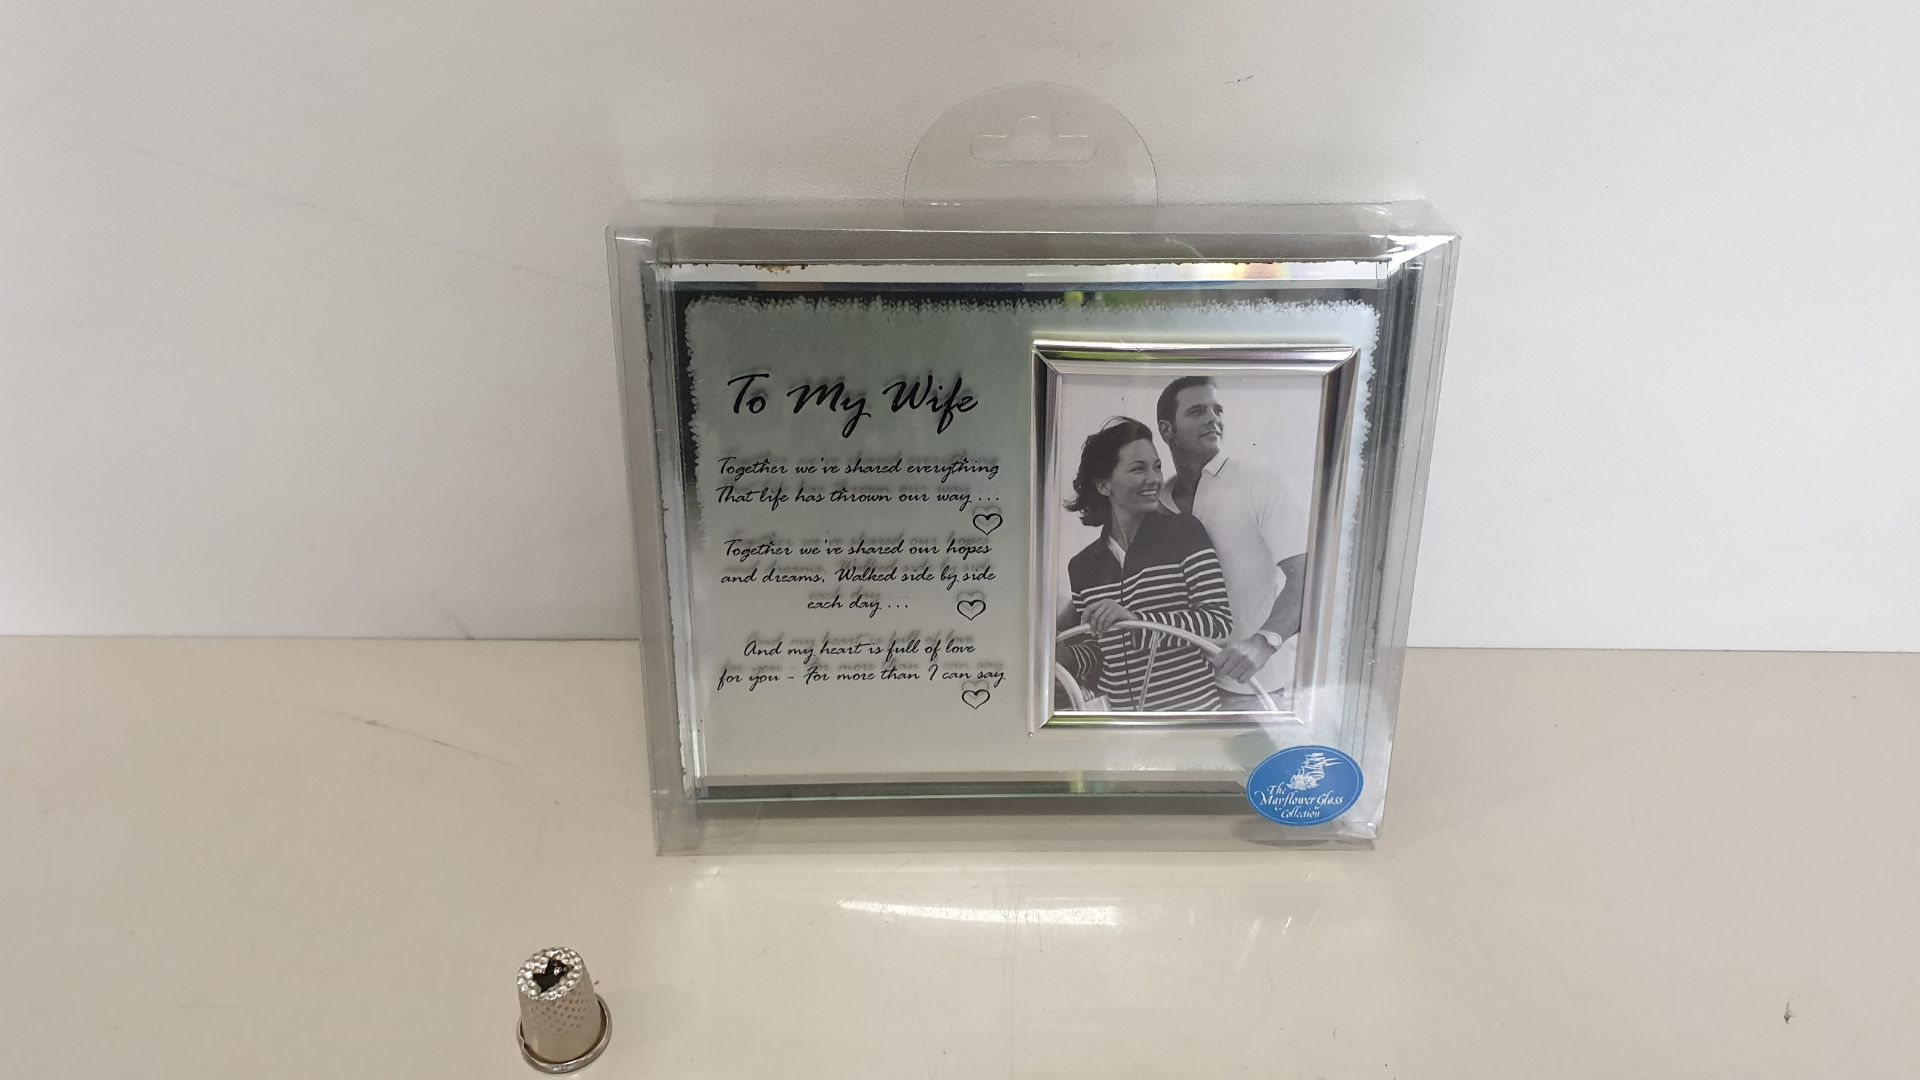 Lot 618 - 112 X BRAND NEW 'THE MAYFLOWER GLASS COLLECTION' TO MY WIFE MESSAGE FRAME - IN 2 BOXES AND 16 LOOSE